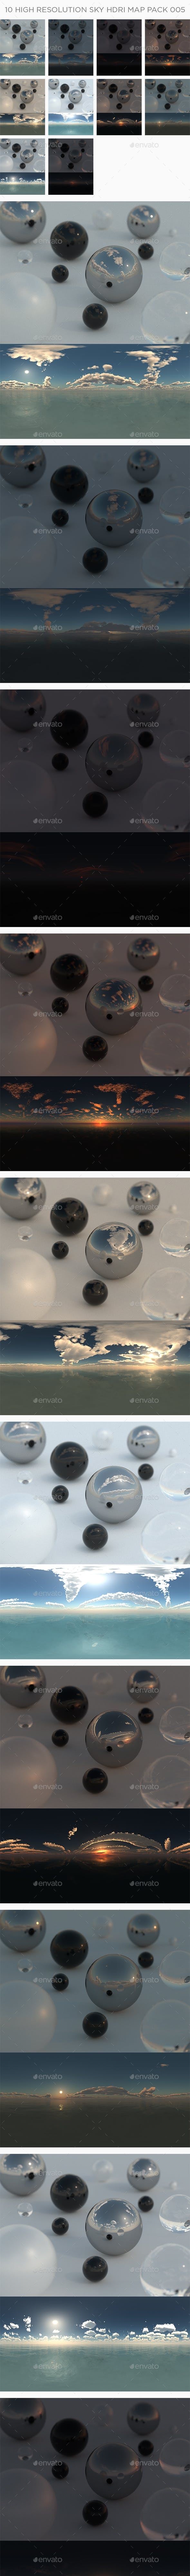 10 High Resolution Sky HDRi Maps Pack 005 - 3DOcean Item for Sale